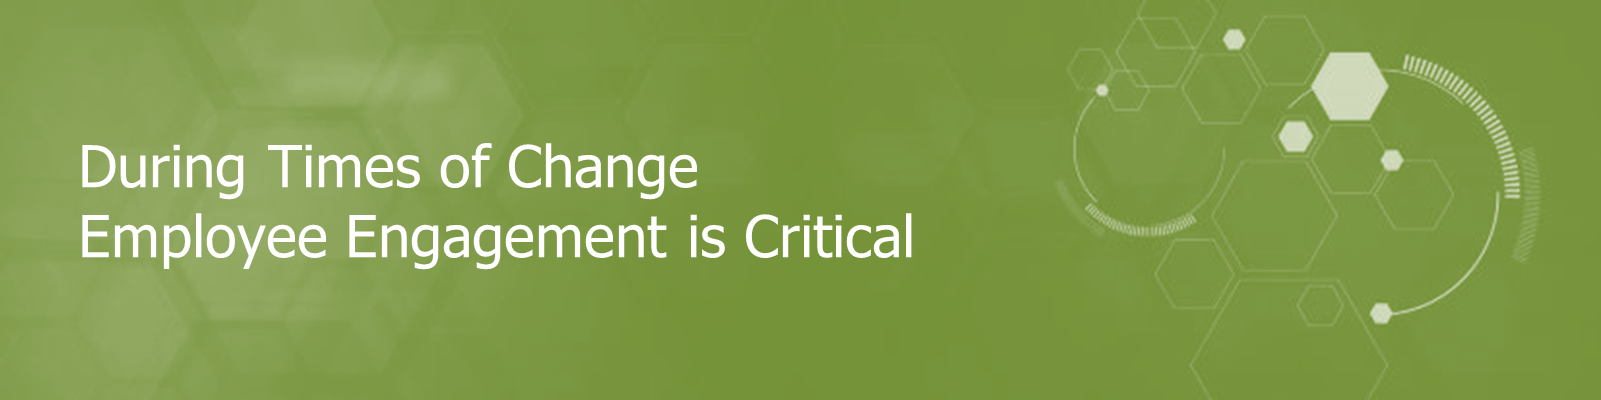 During times of change, employee engagement is critical.